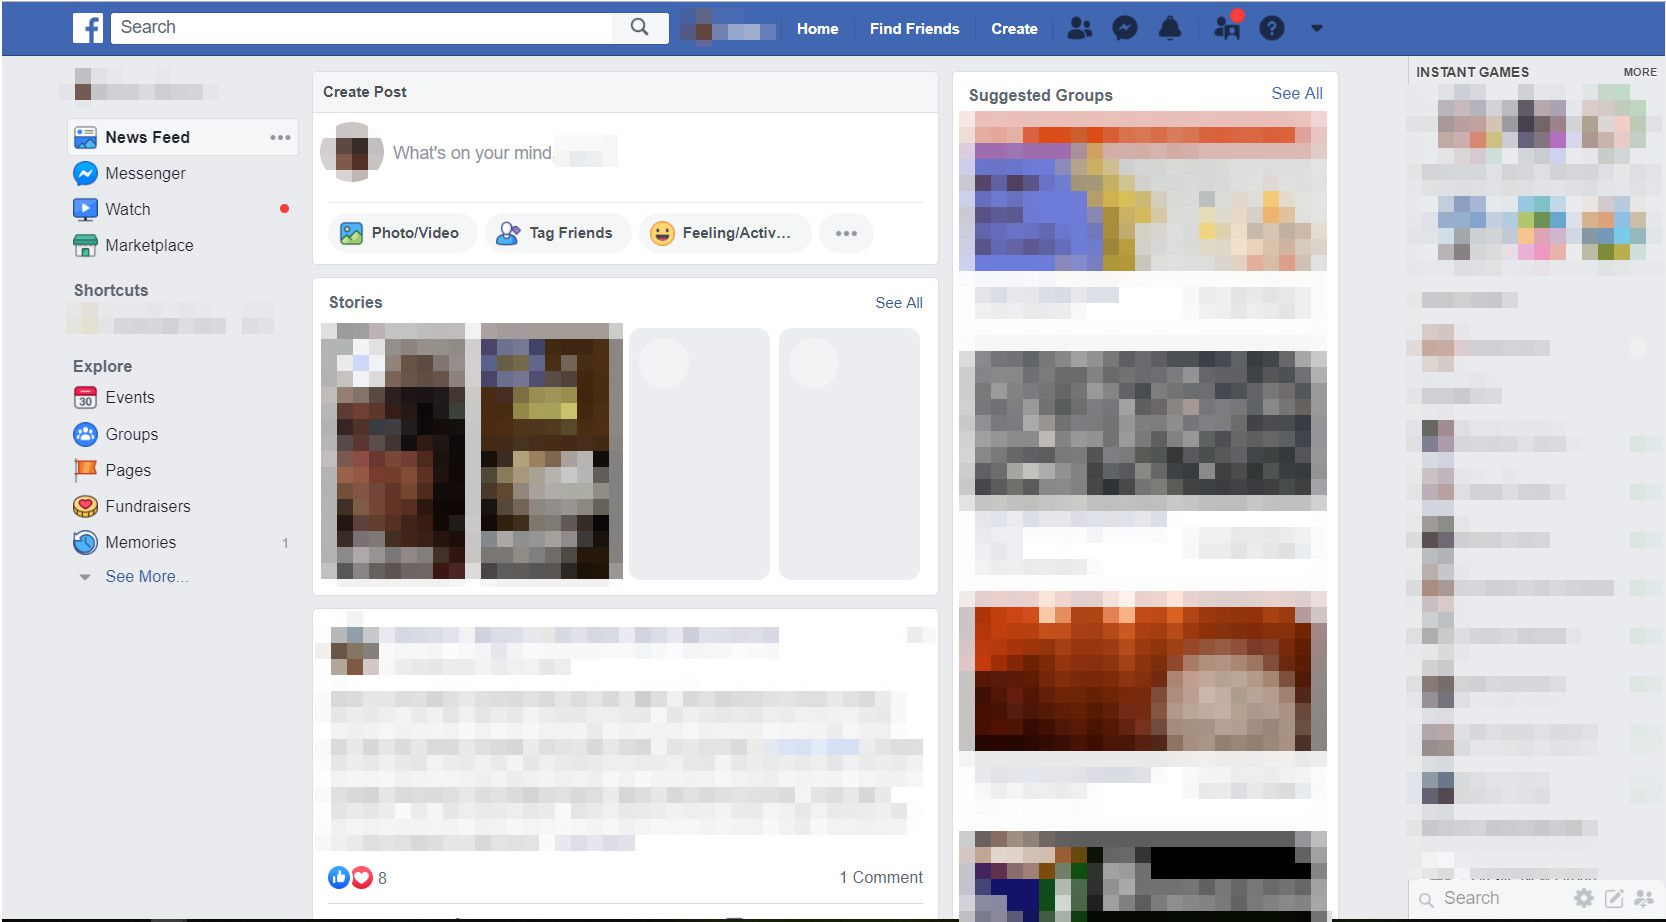 How to Block Strangers From Finding You on Facebook